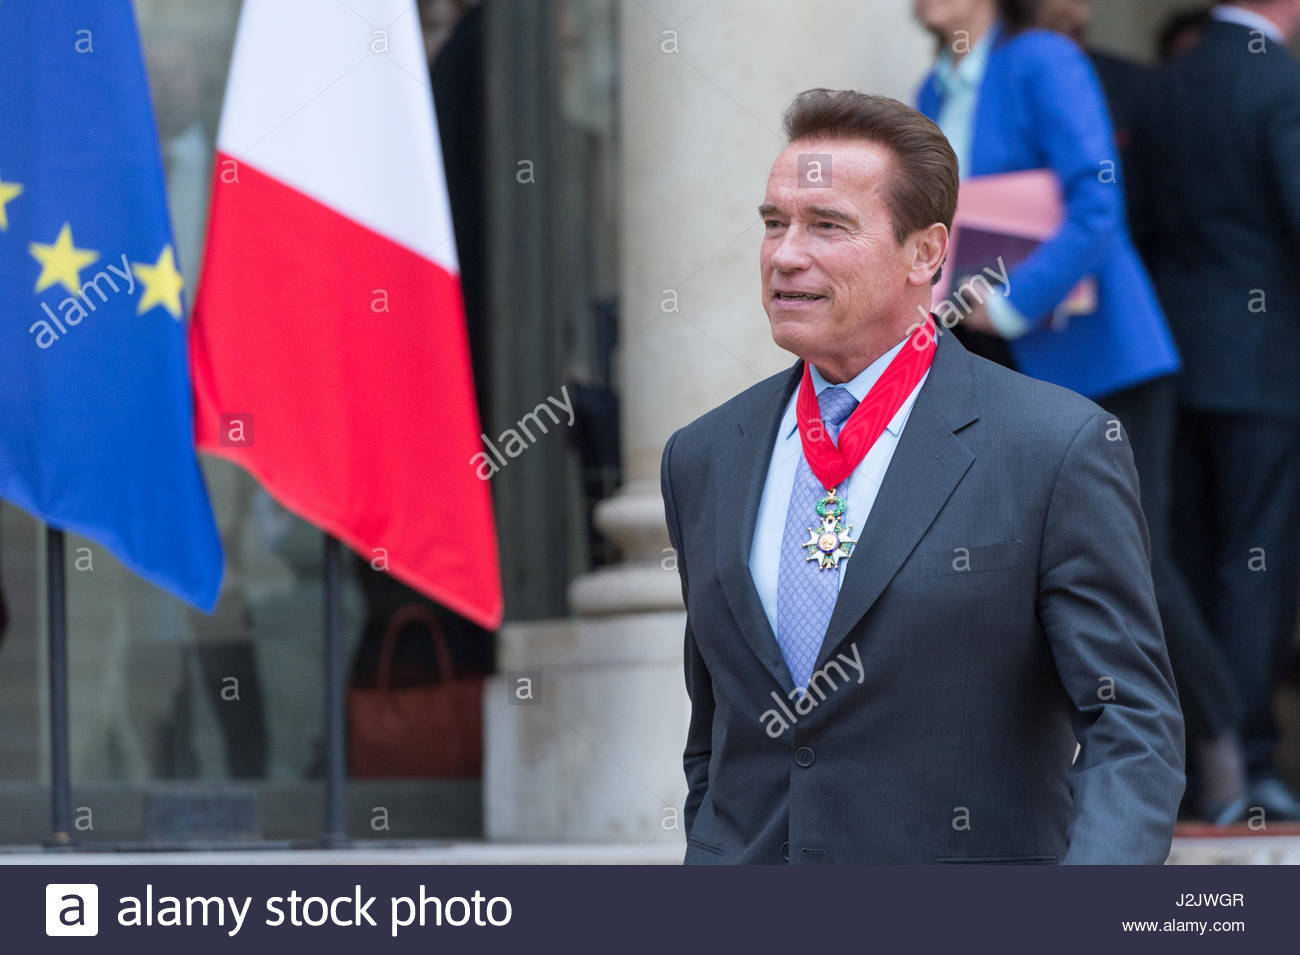 Paris, France. 28th Apr, 2017. US actor and former governor of California Arnold Schwarzenegger leaves after he - Stock Image